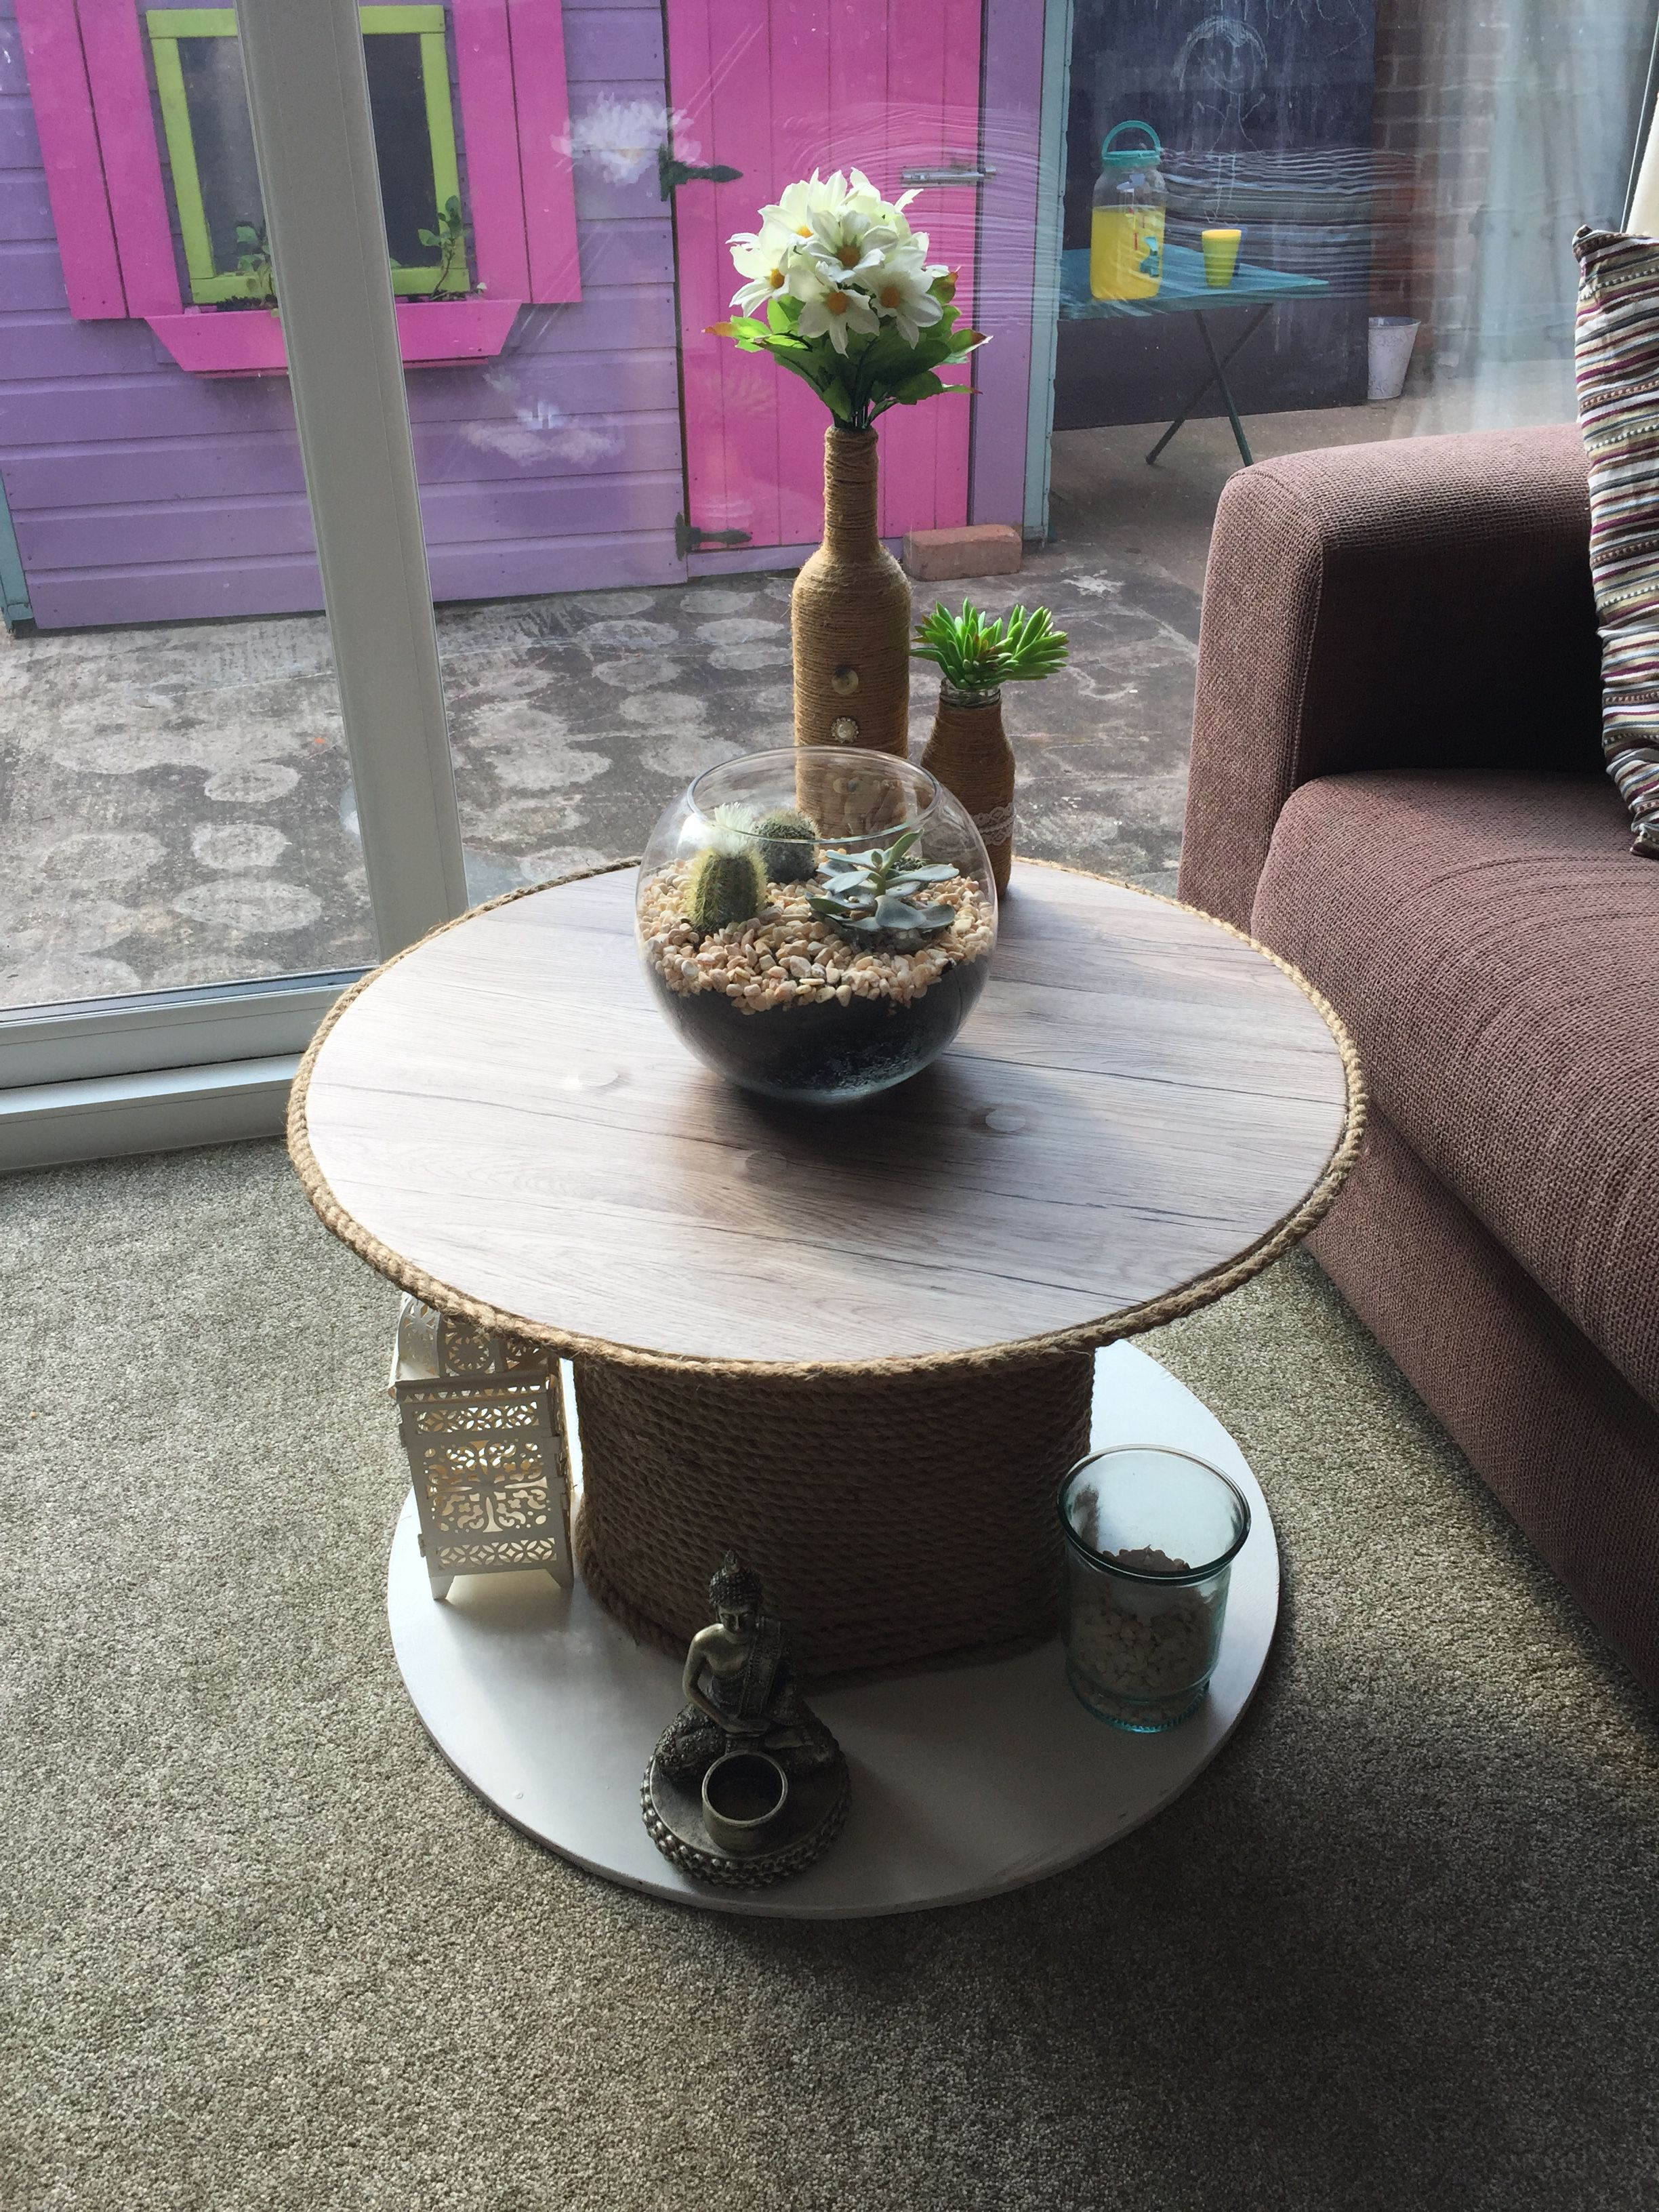 Spool reel table I upcycled